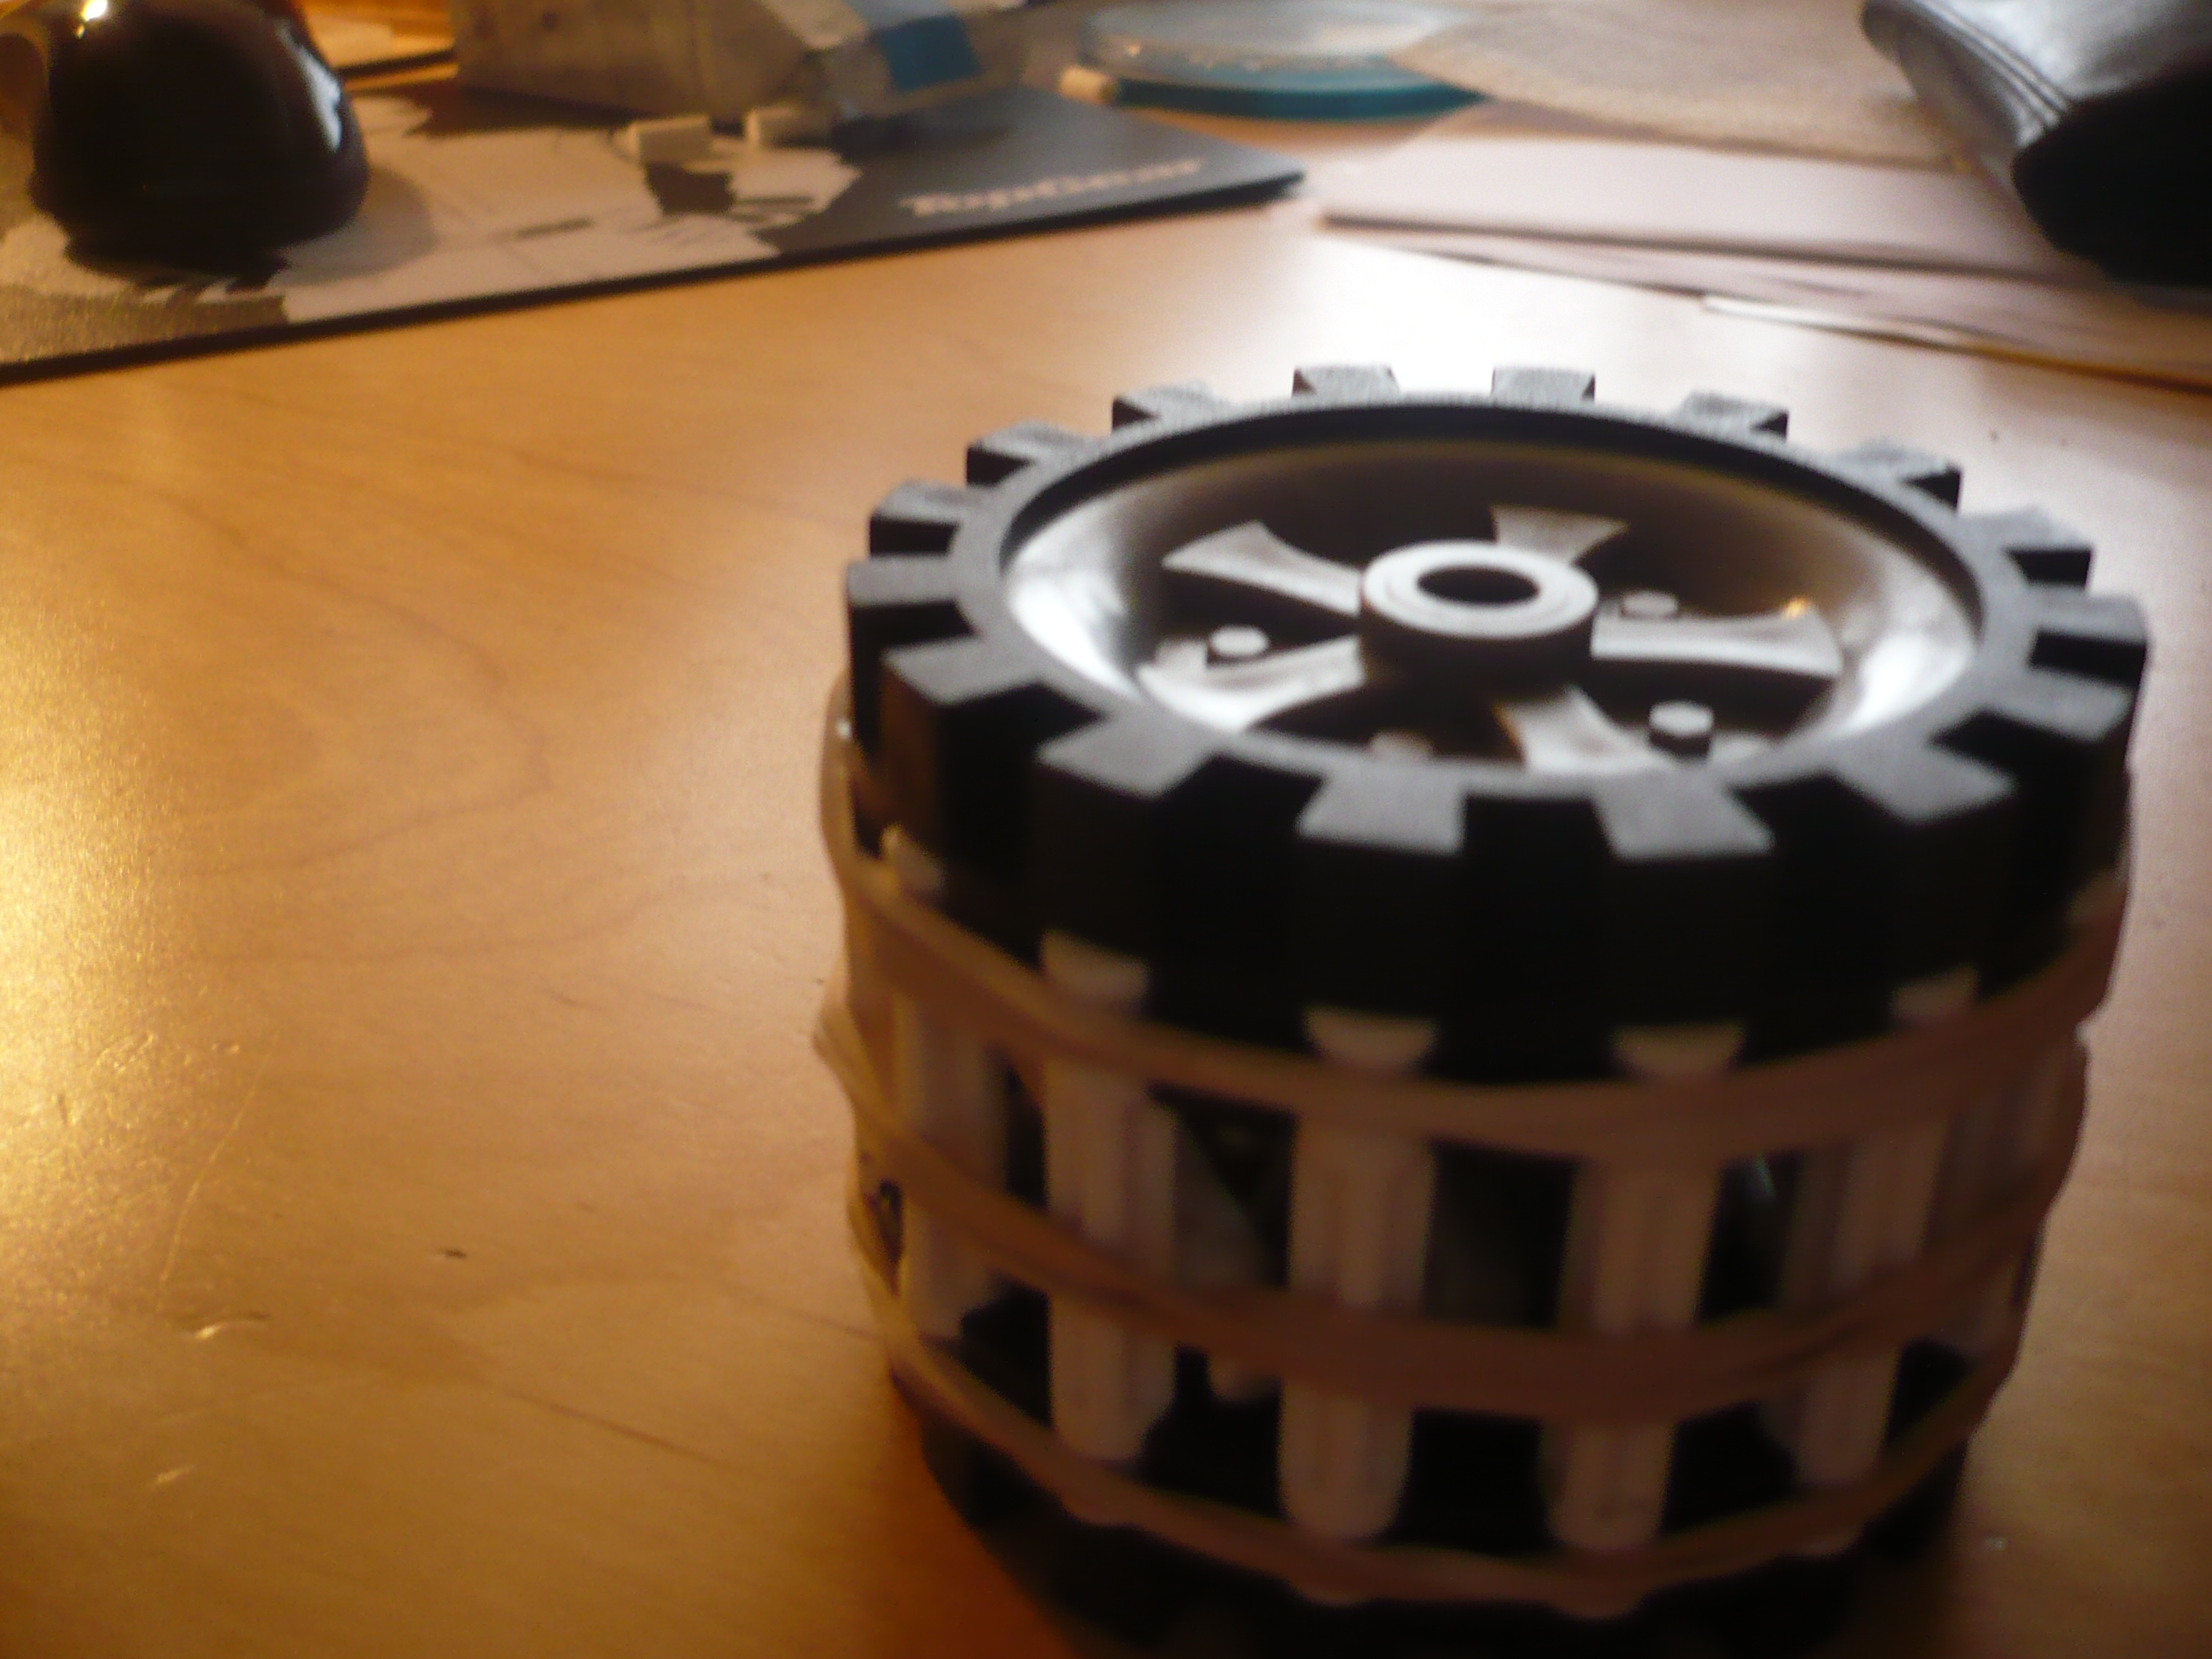 Picture of The Compact Jack (mini-Khailo) Dedicated to Mykhailo and Jackster